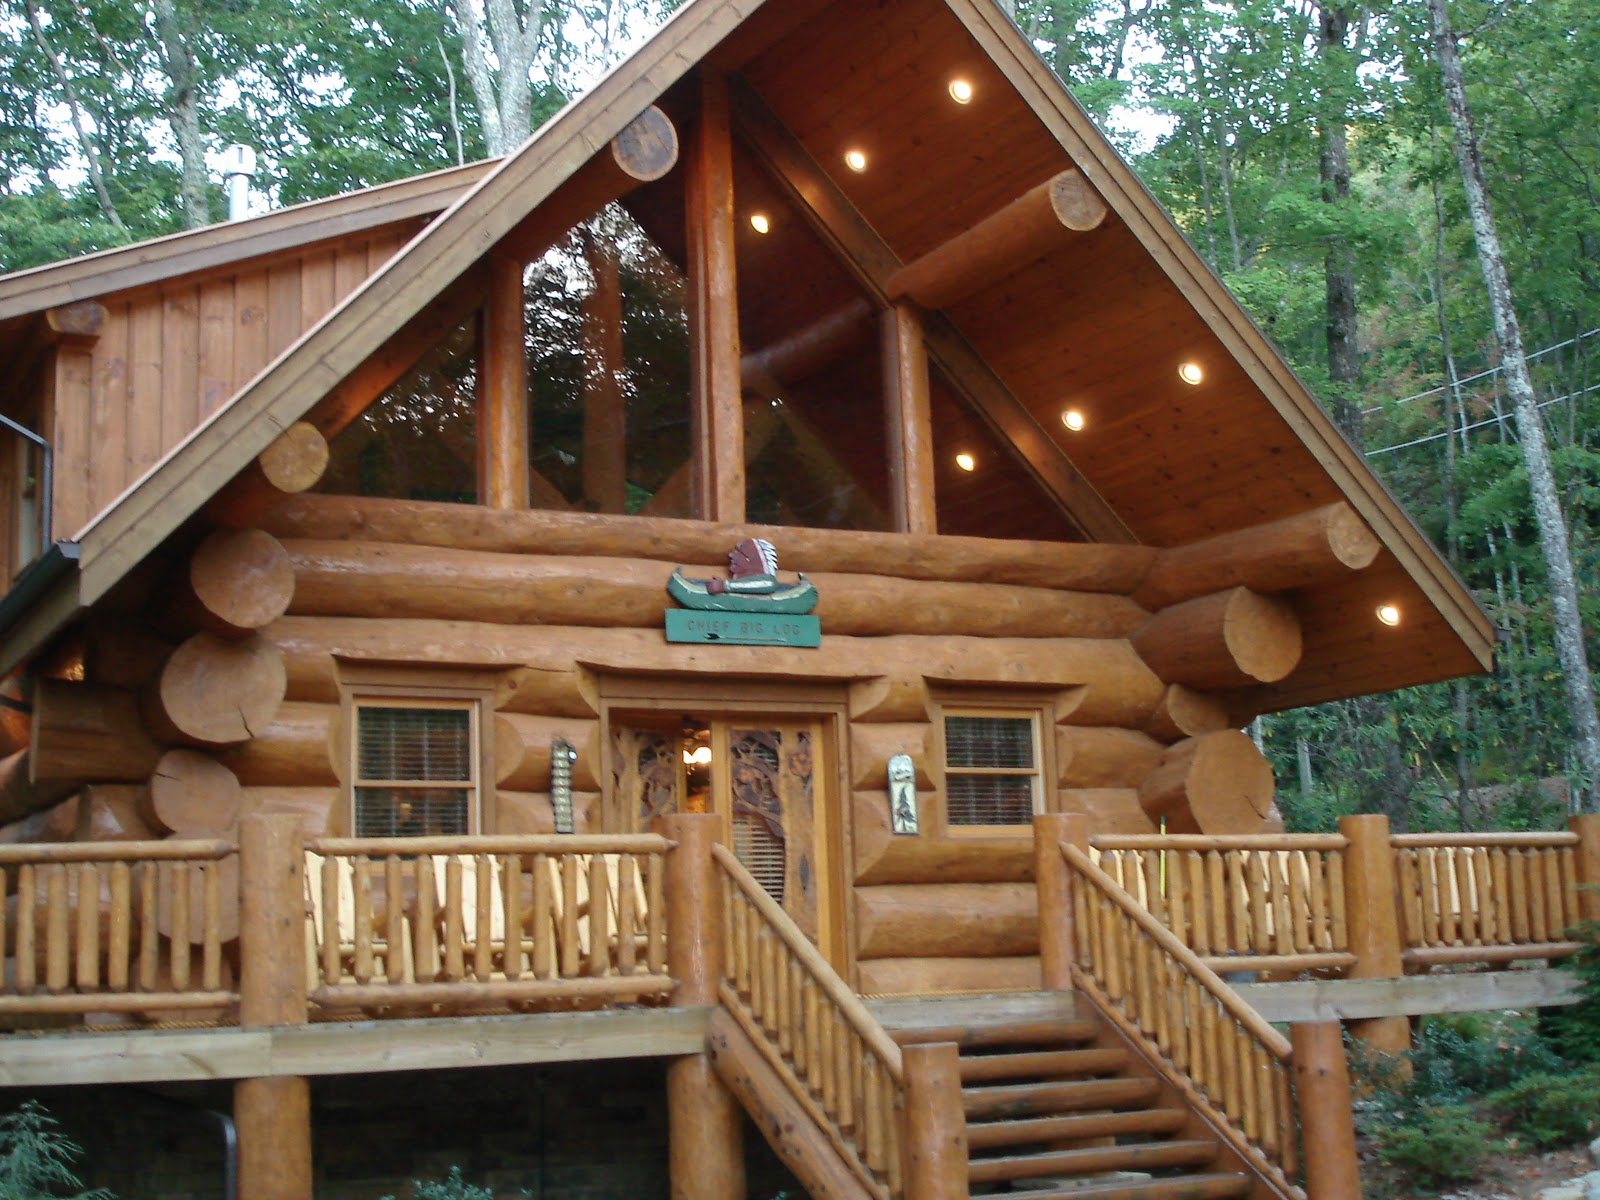 cabins rent with in rentals cabin info friendly for onlinechange forge skny pigeon companies sprgs rental gatlinburg tn cb best pet tennessee private t p pools interior